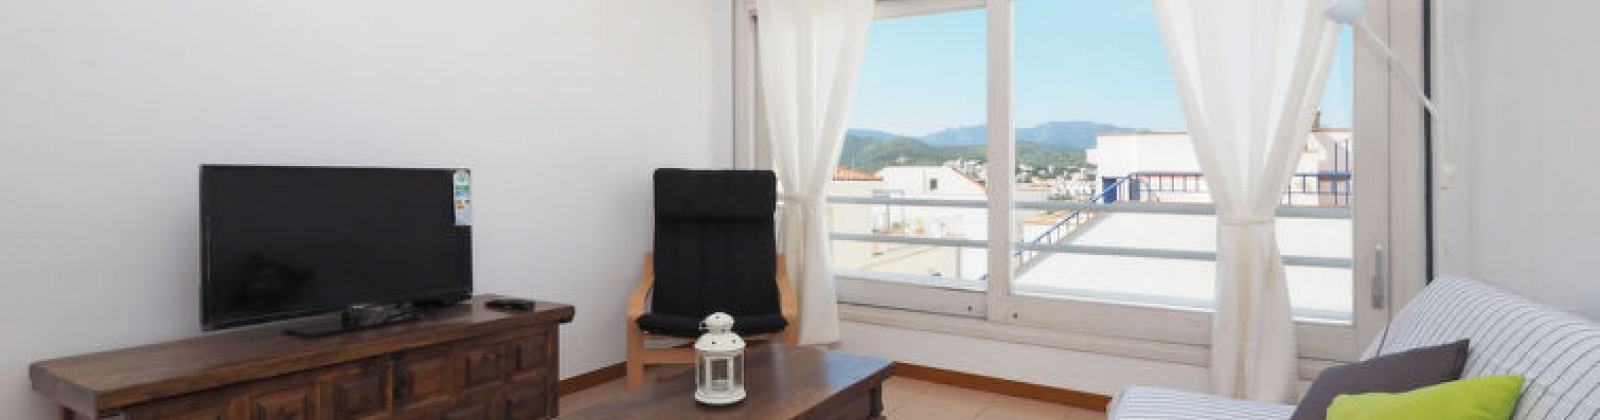 14 Roger de flor,Llançà,Catalonia 17490,2 Bedrooms Bedrooms,1 BathroomBathrooms,Apartment,Roger de flor ,1006